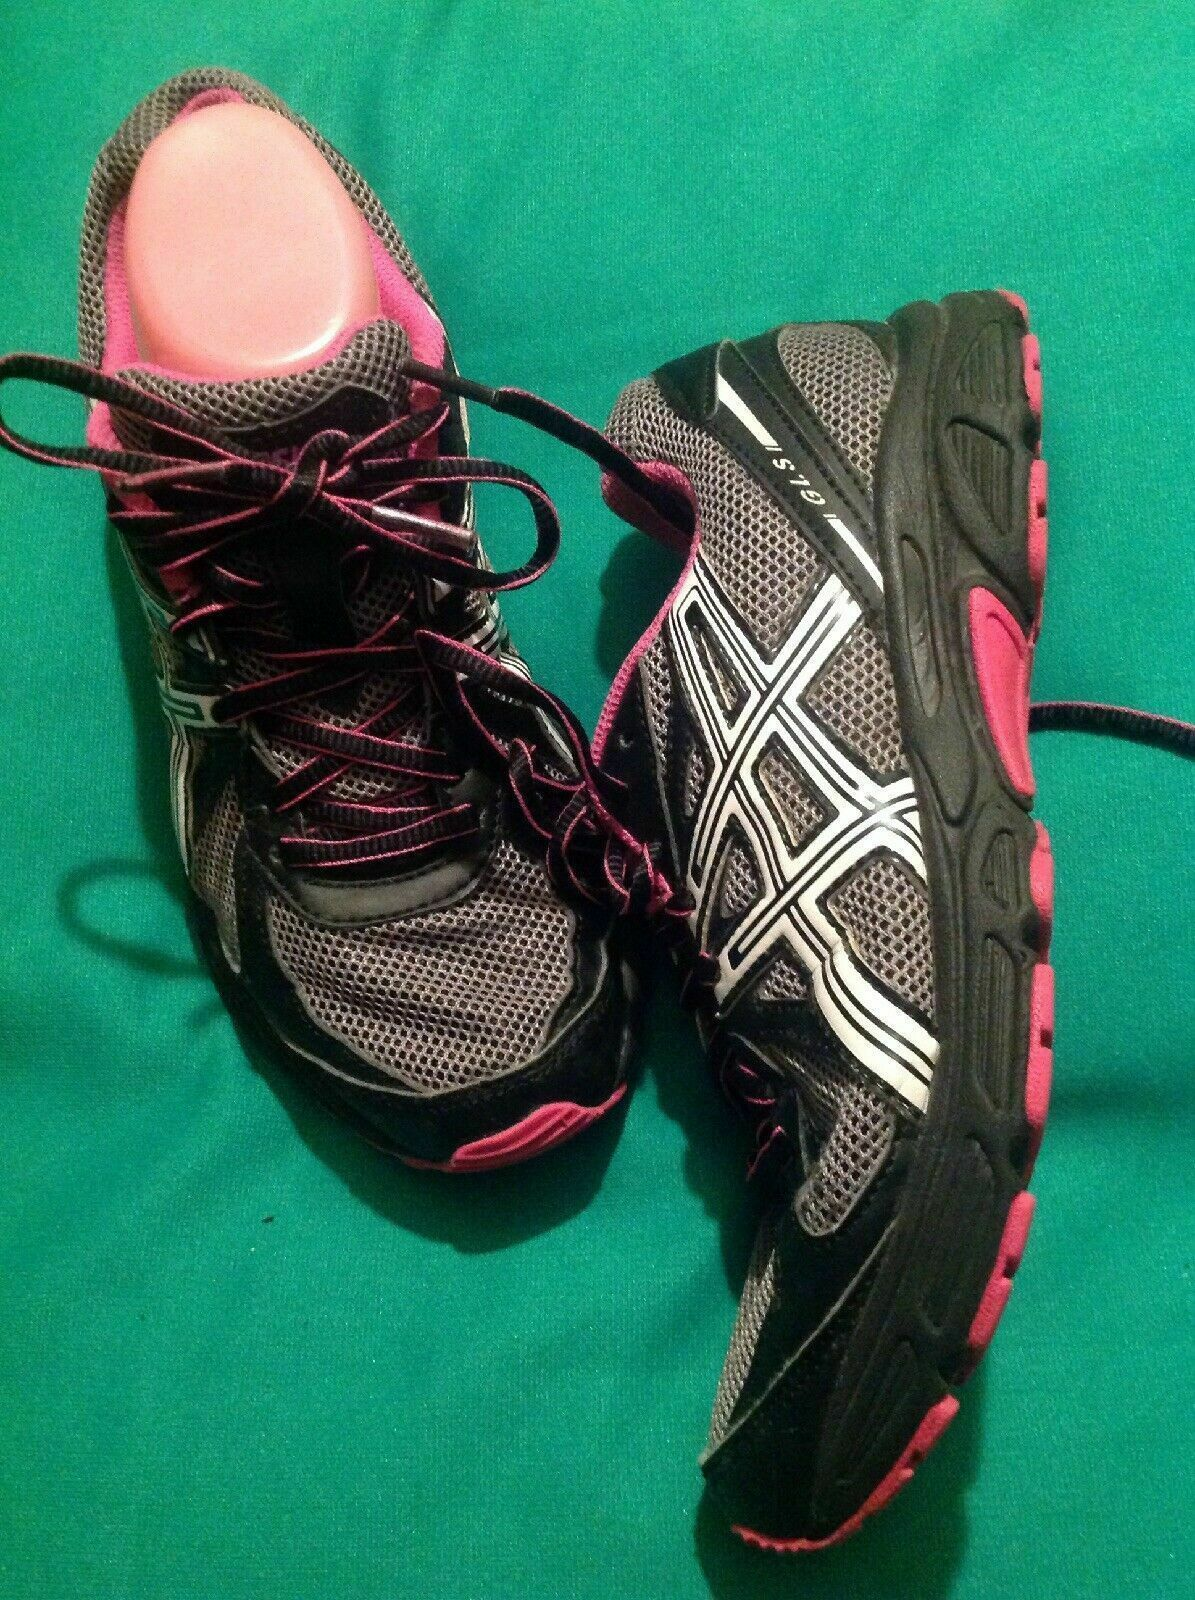 ASICS GLS T28AQ WOMEN'S 7.5M SNEAKERS WORKING TRAINING SNEAKERS BLACK/GRAY/PINK